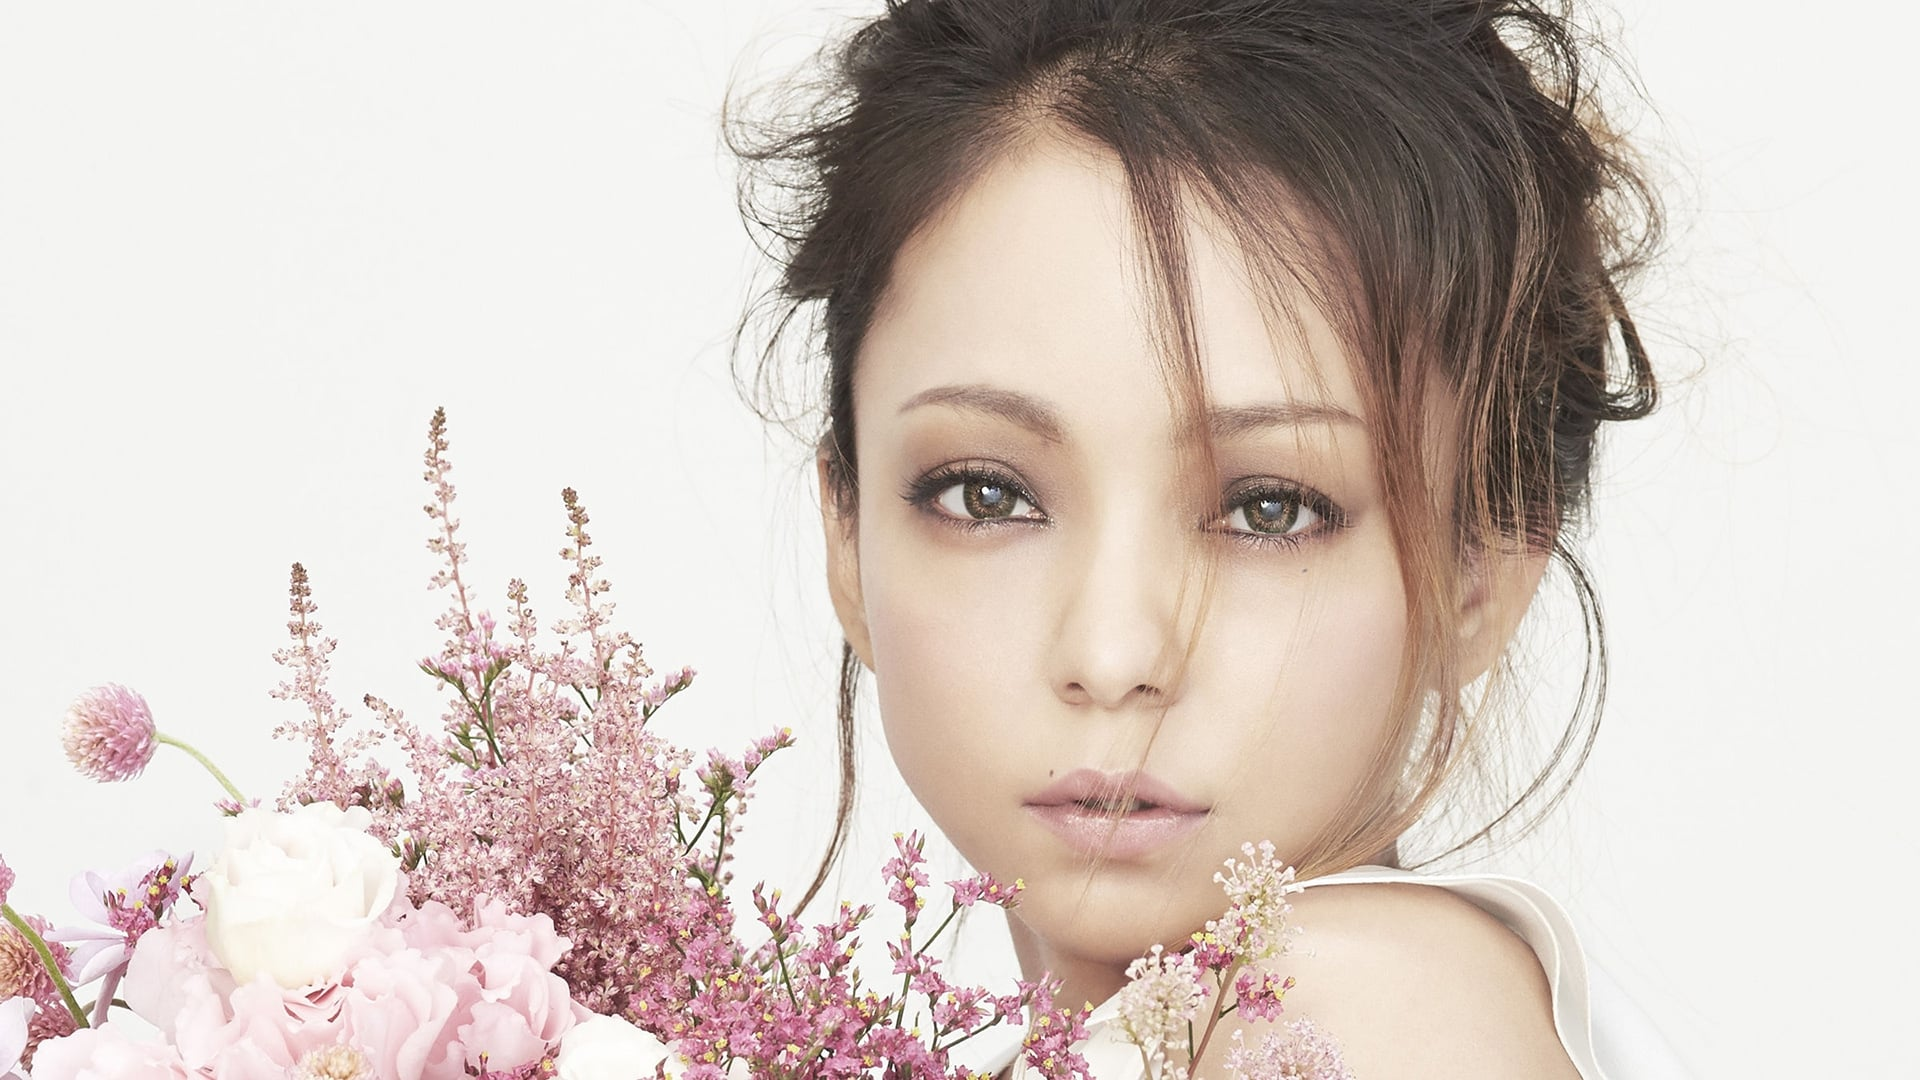 Best Cars And Bikes Wallpapers Namie Amuro Hd Wallpapers High Quality